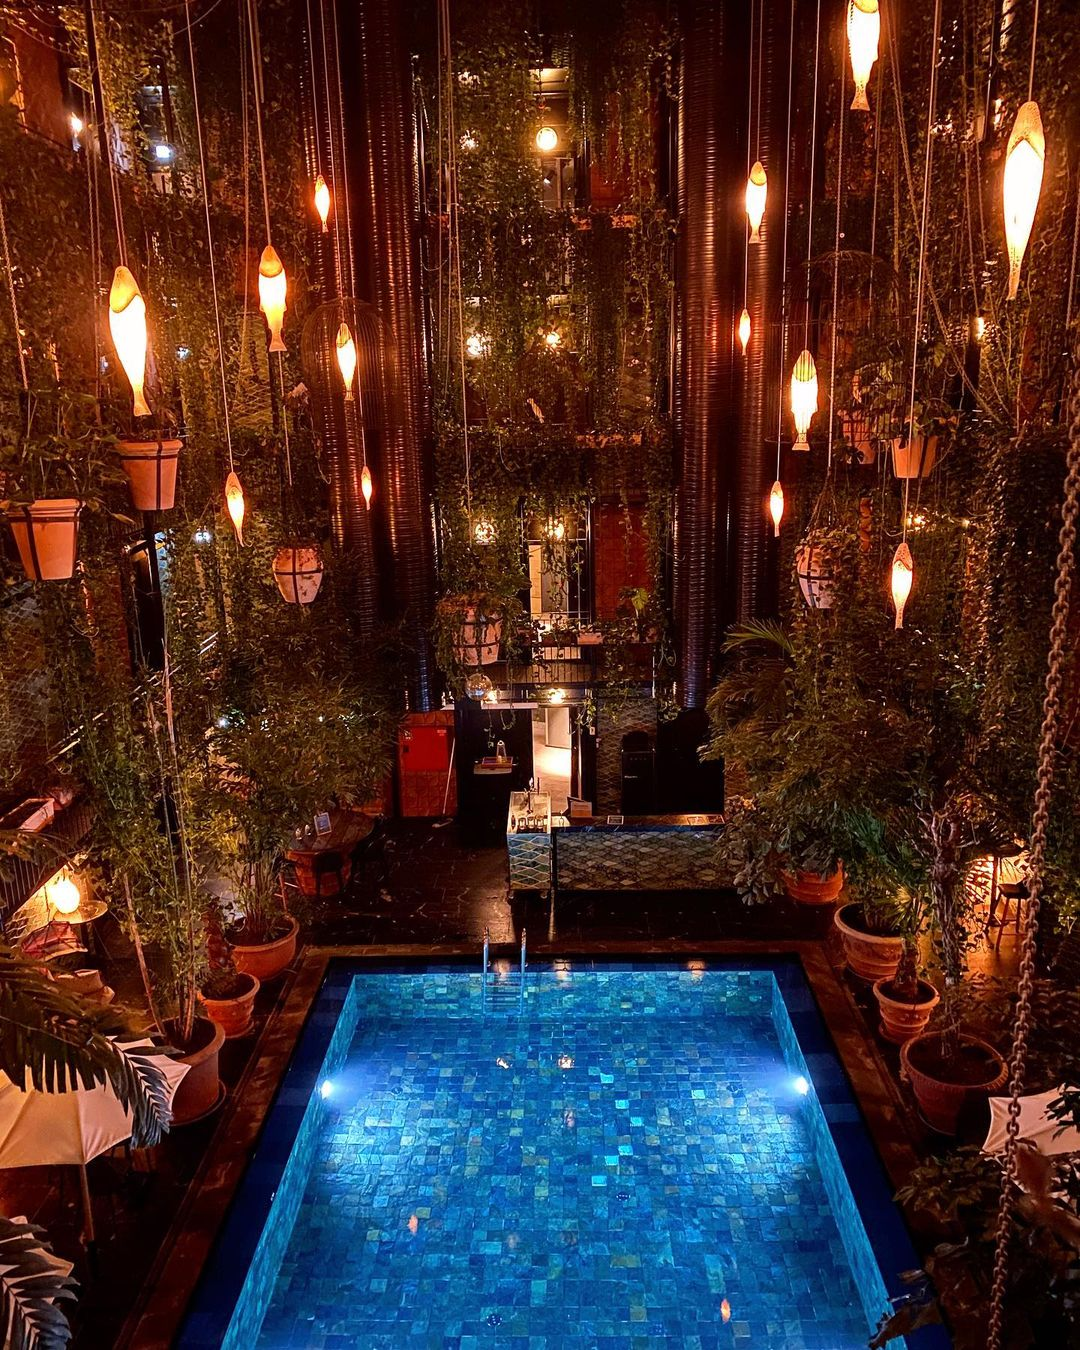 Interior pool with dramatic lighting at Manon Les Suites